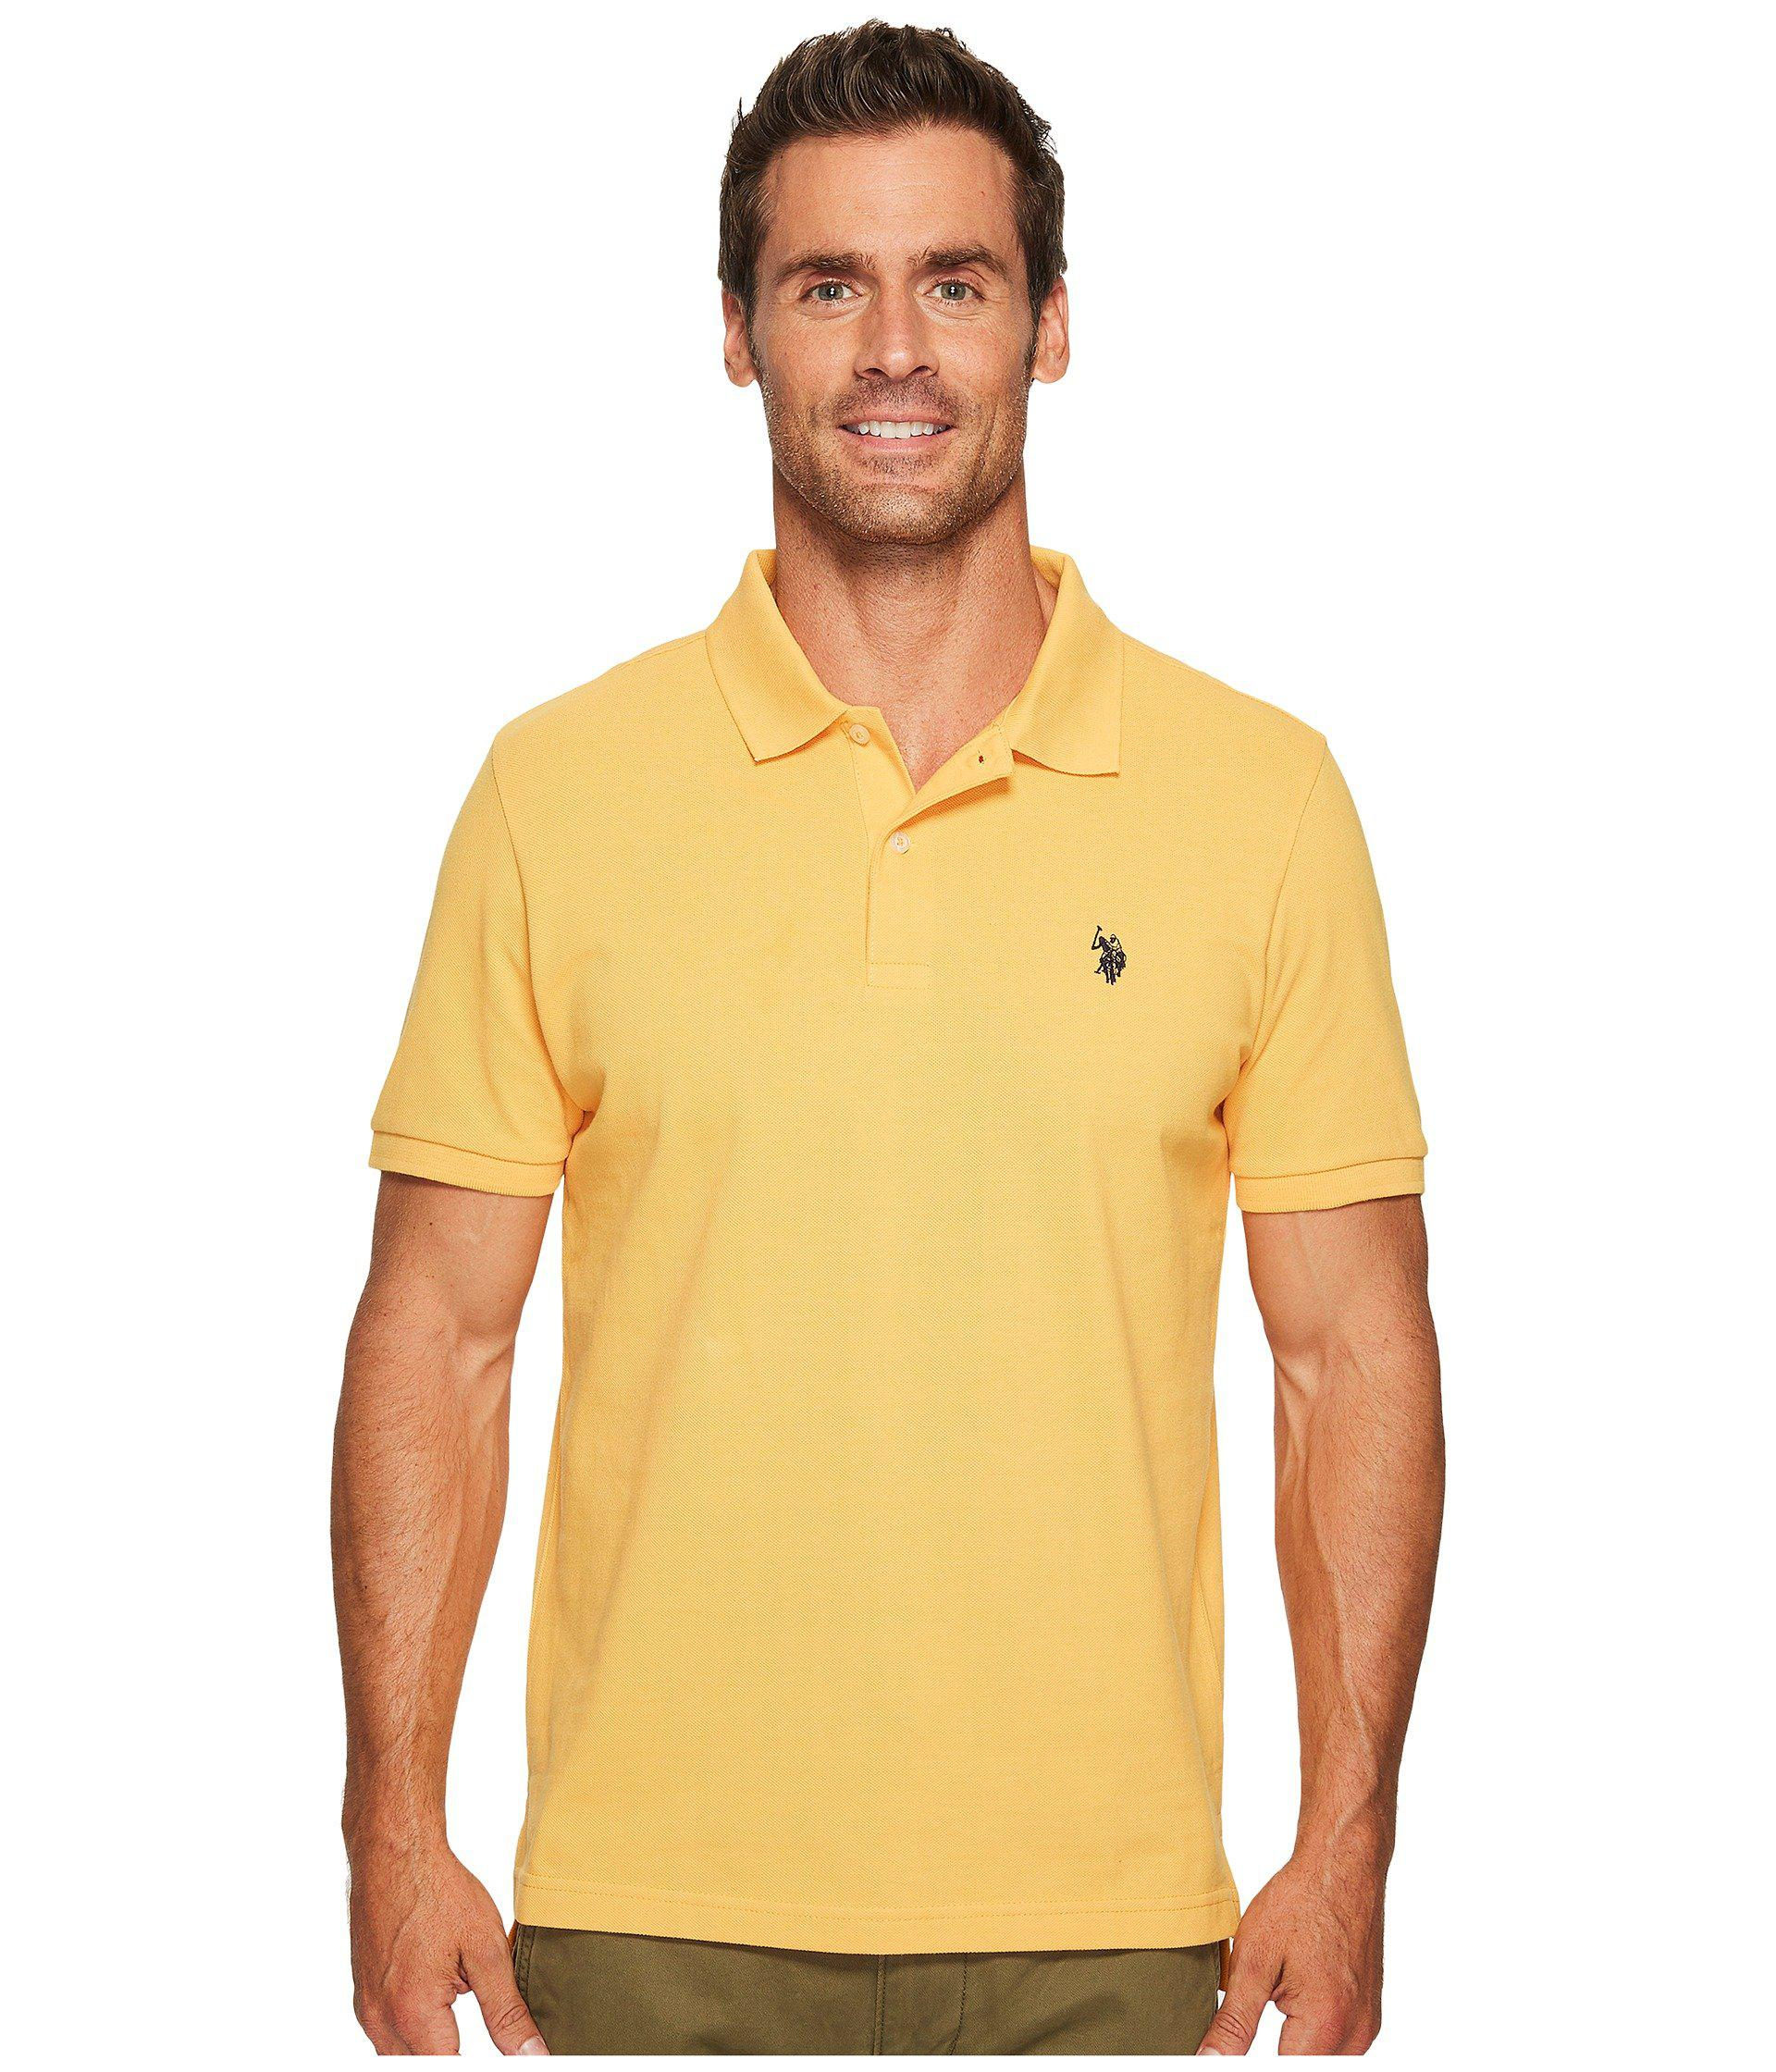 U.S. POLO ASSN. Men's Yellow Solid Cotton Pique Polo With Small Pony